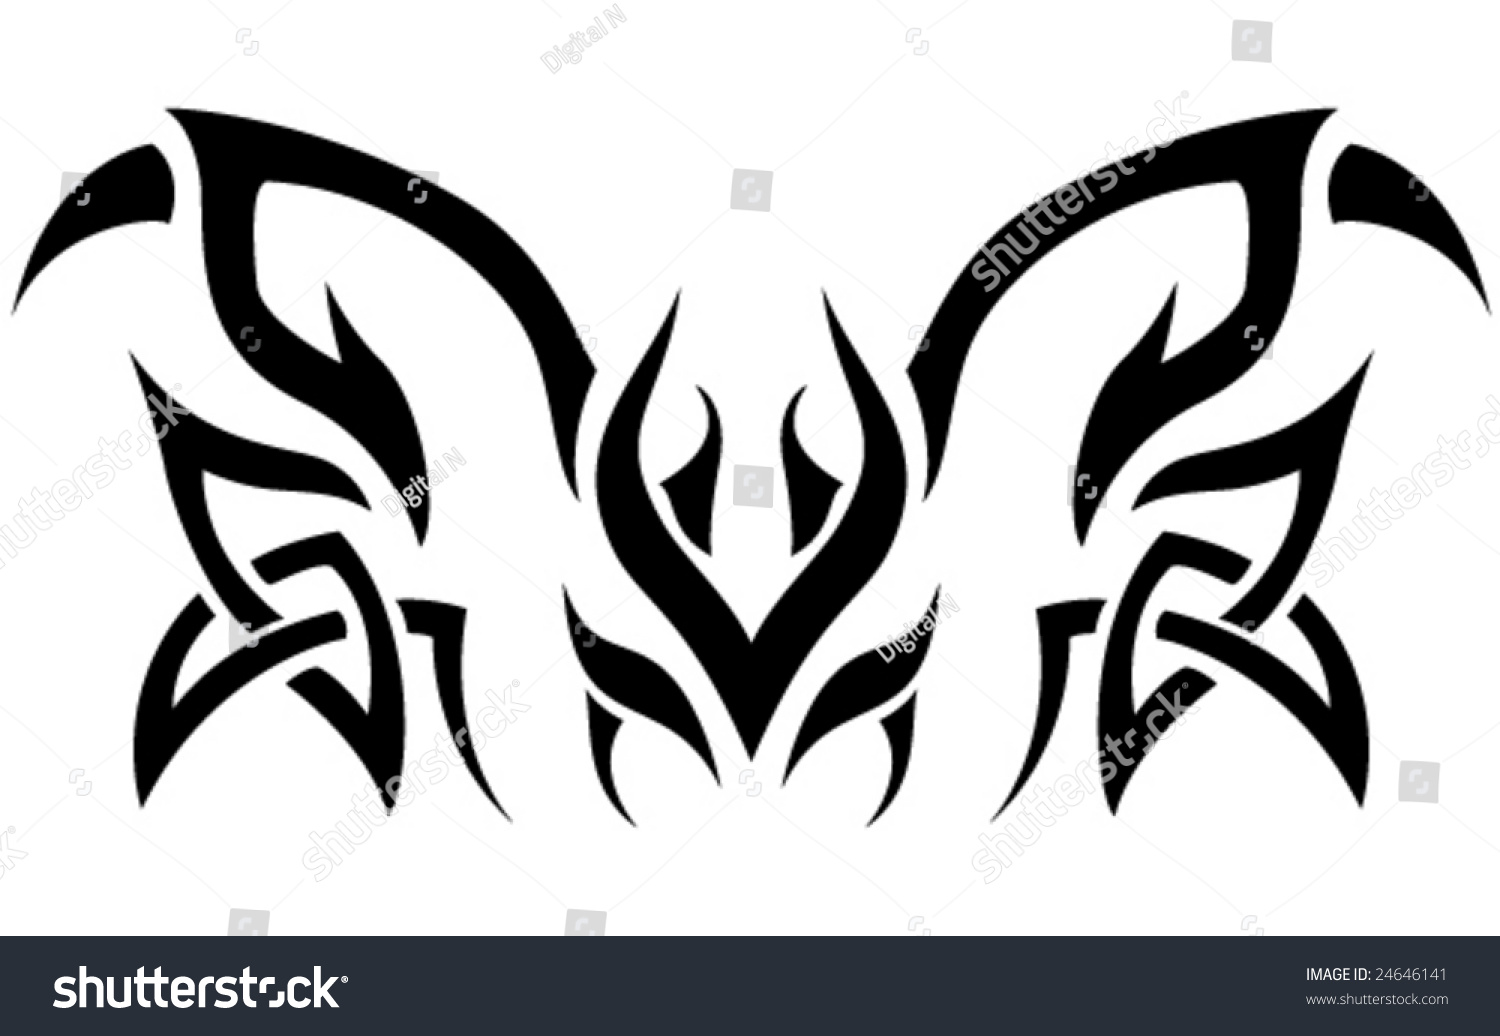 Stock Illustration Volleyball Tribal Abstract Vector: Vector Abstract Tribal Tattoo Shape.